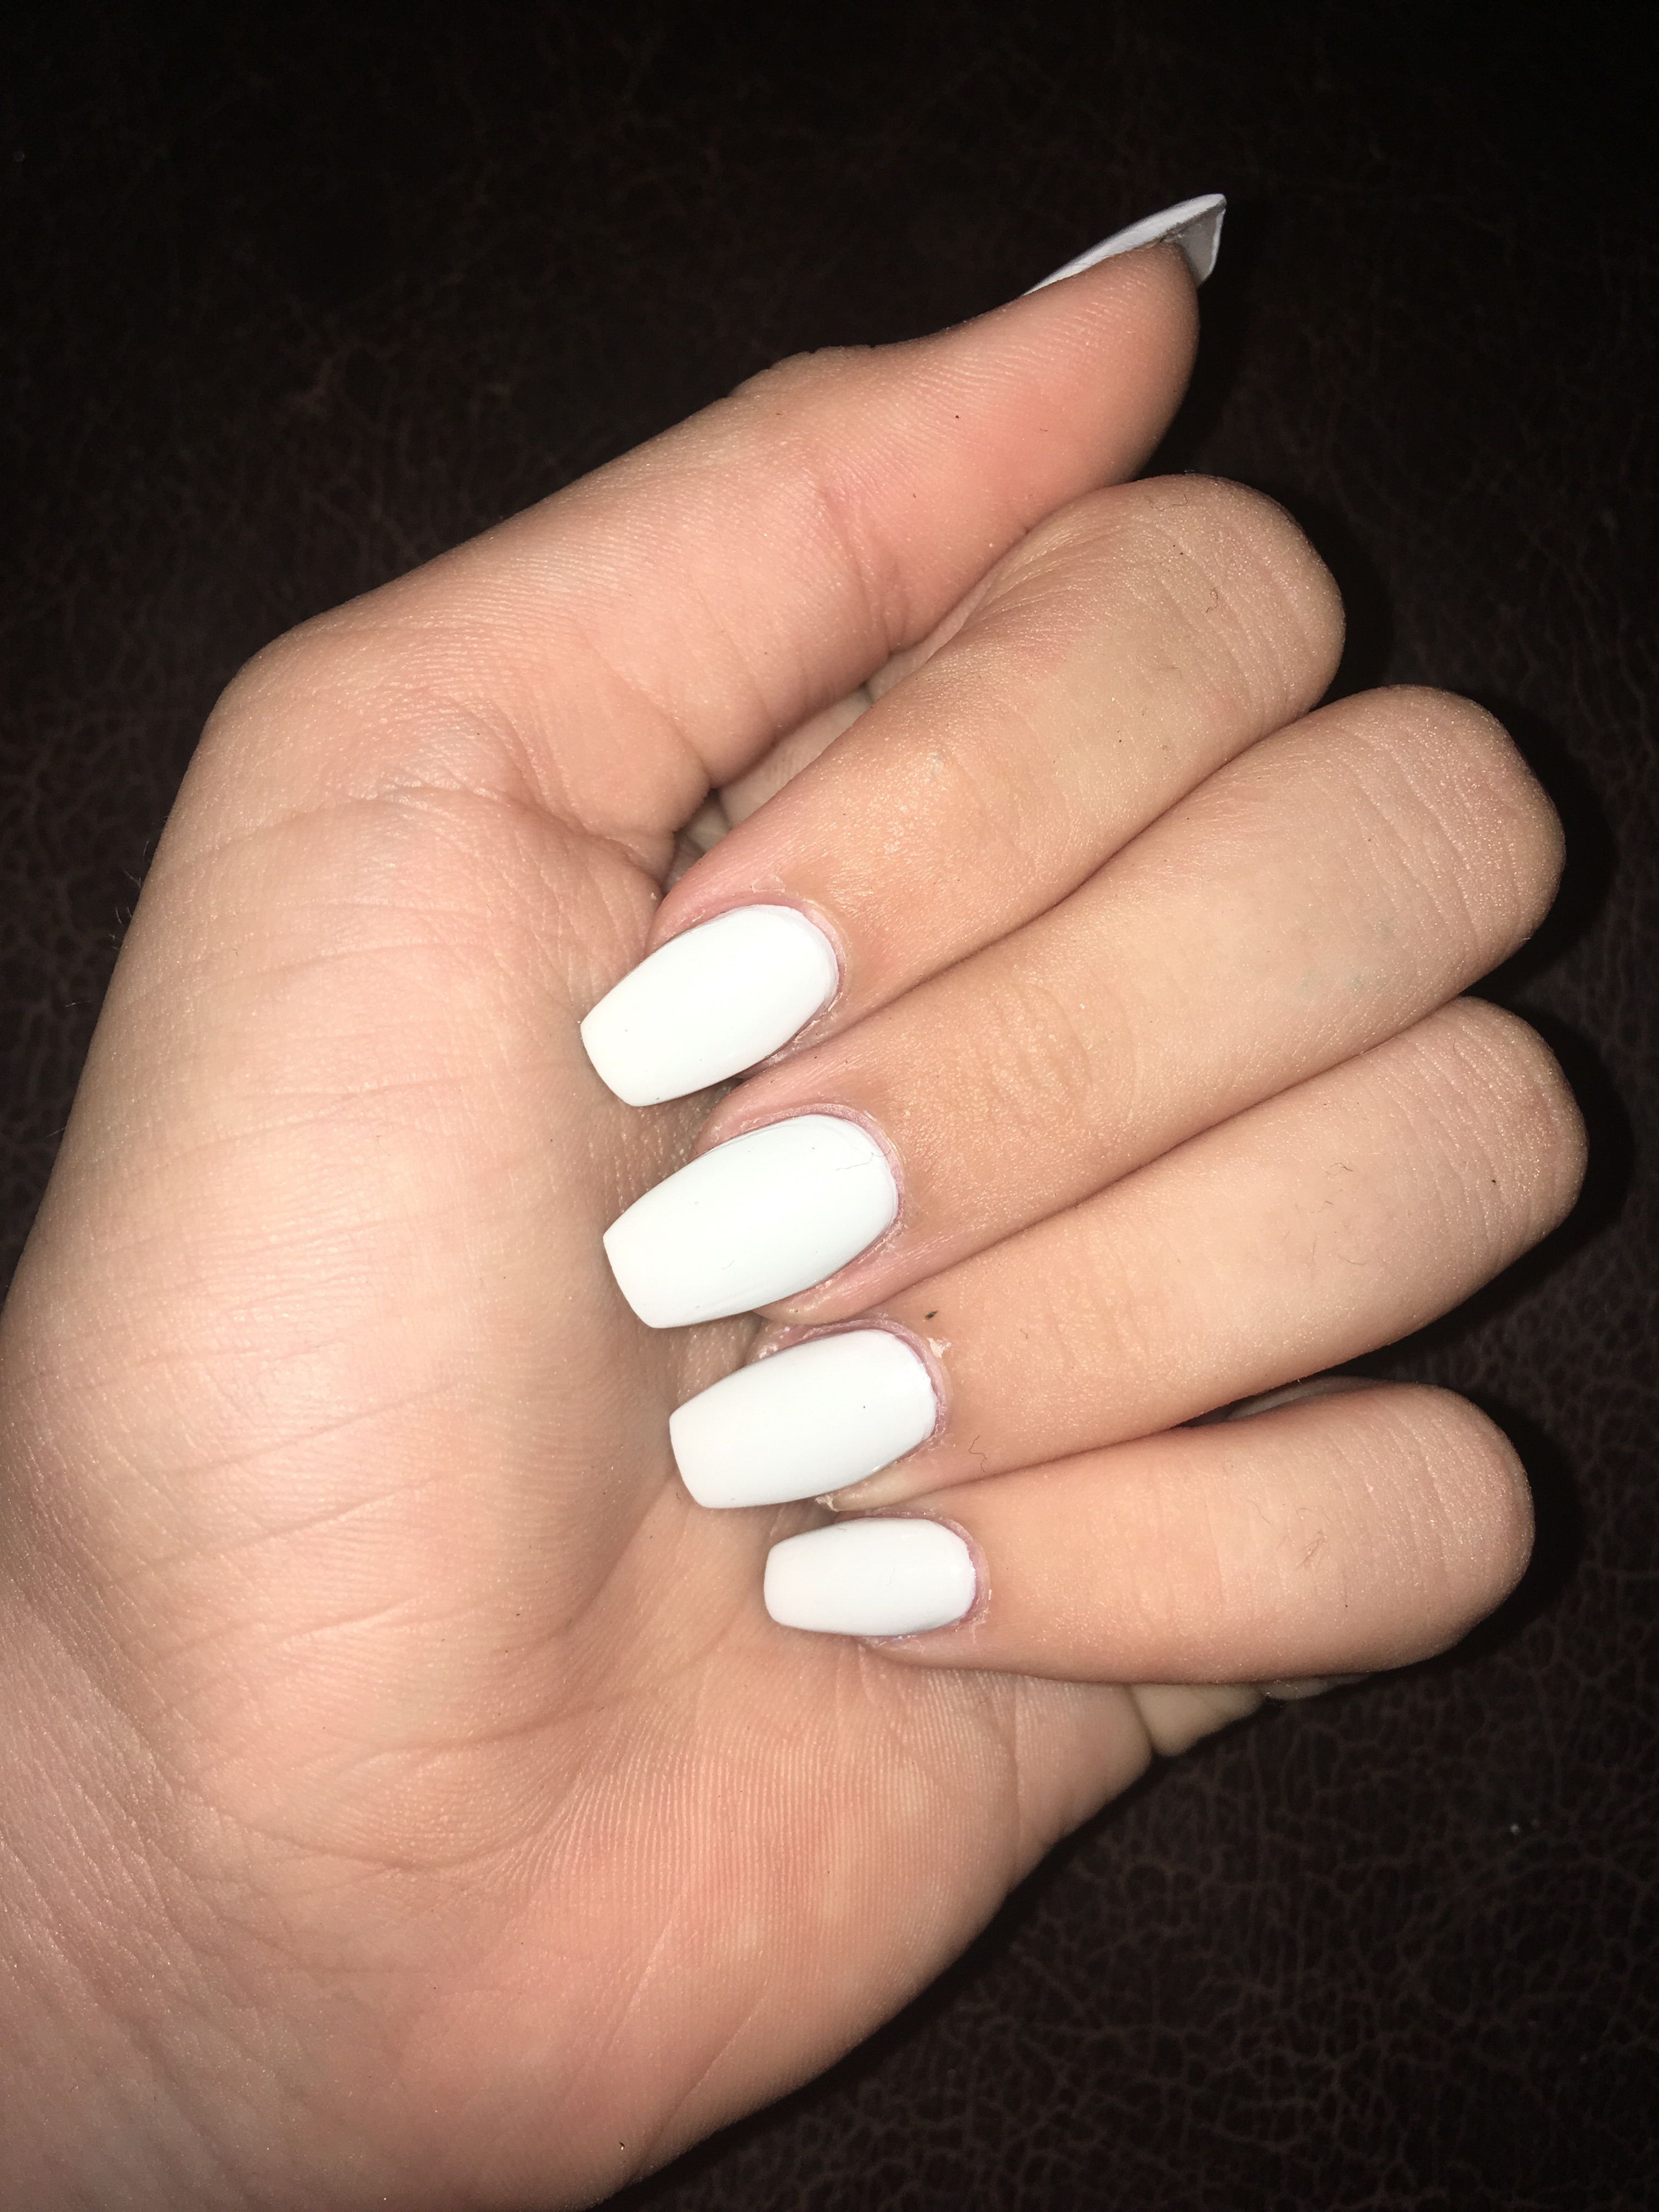 Coffin White Acrylic Nails Acrylicnailsforsummer White Acrylic Nails Summer Acrylic Nails White Coffin Nails